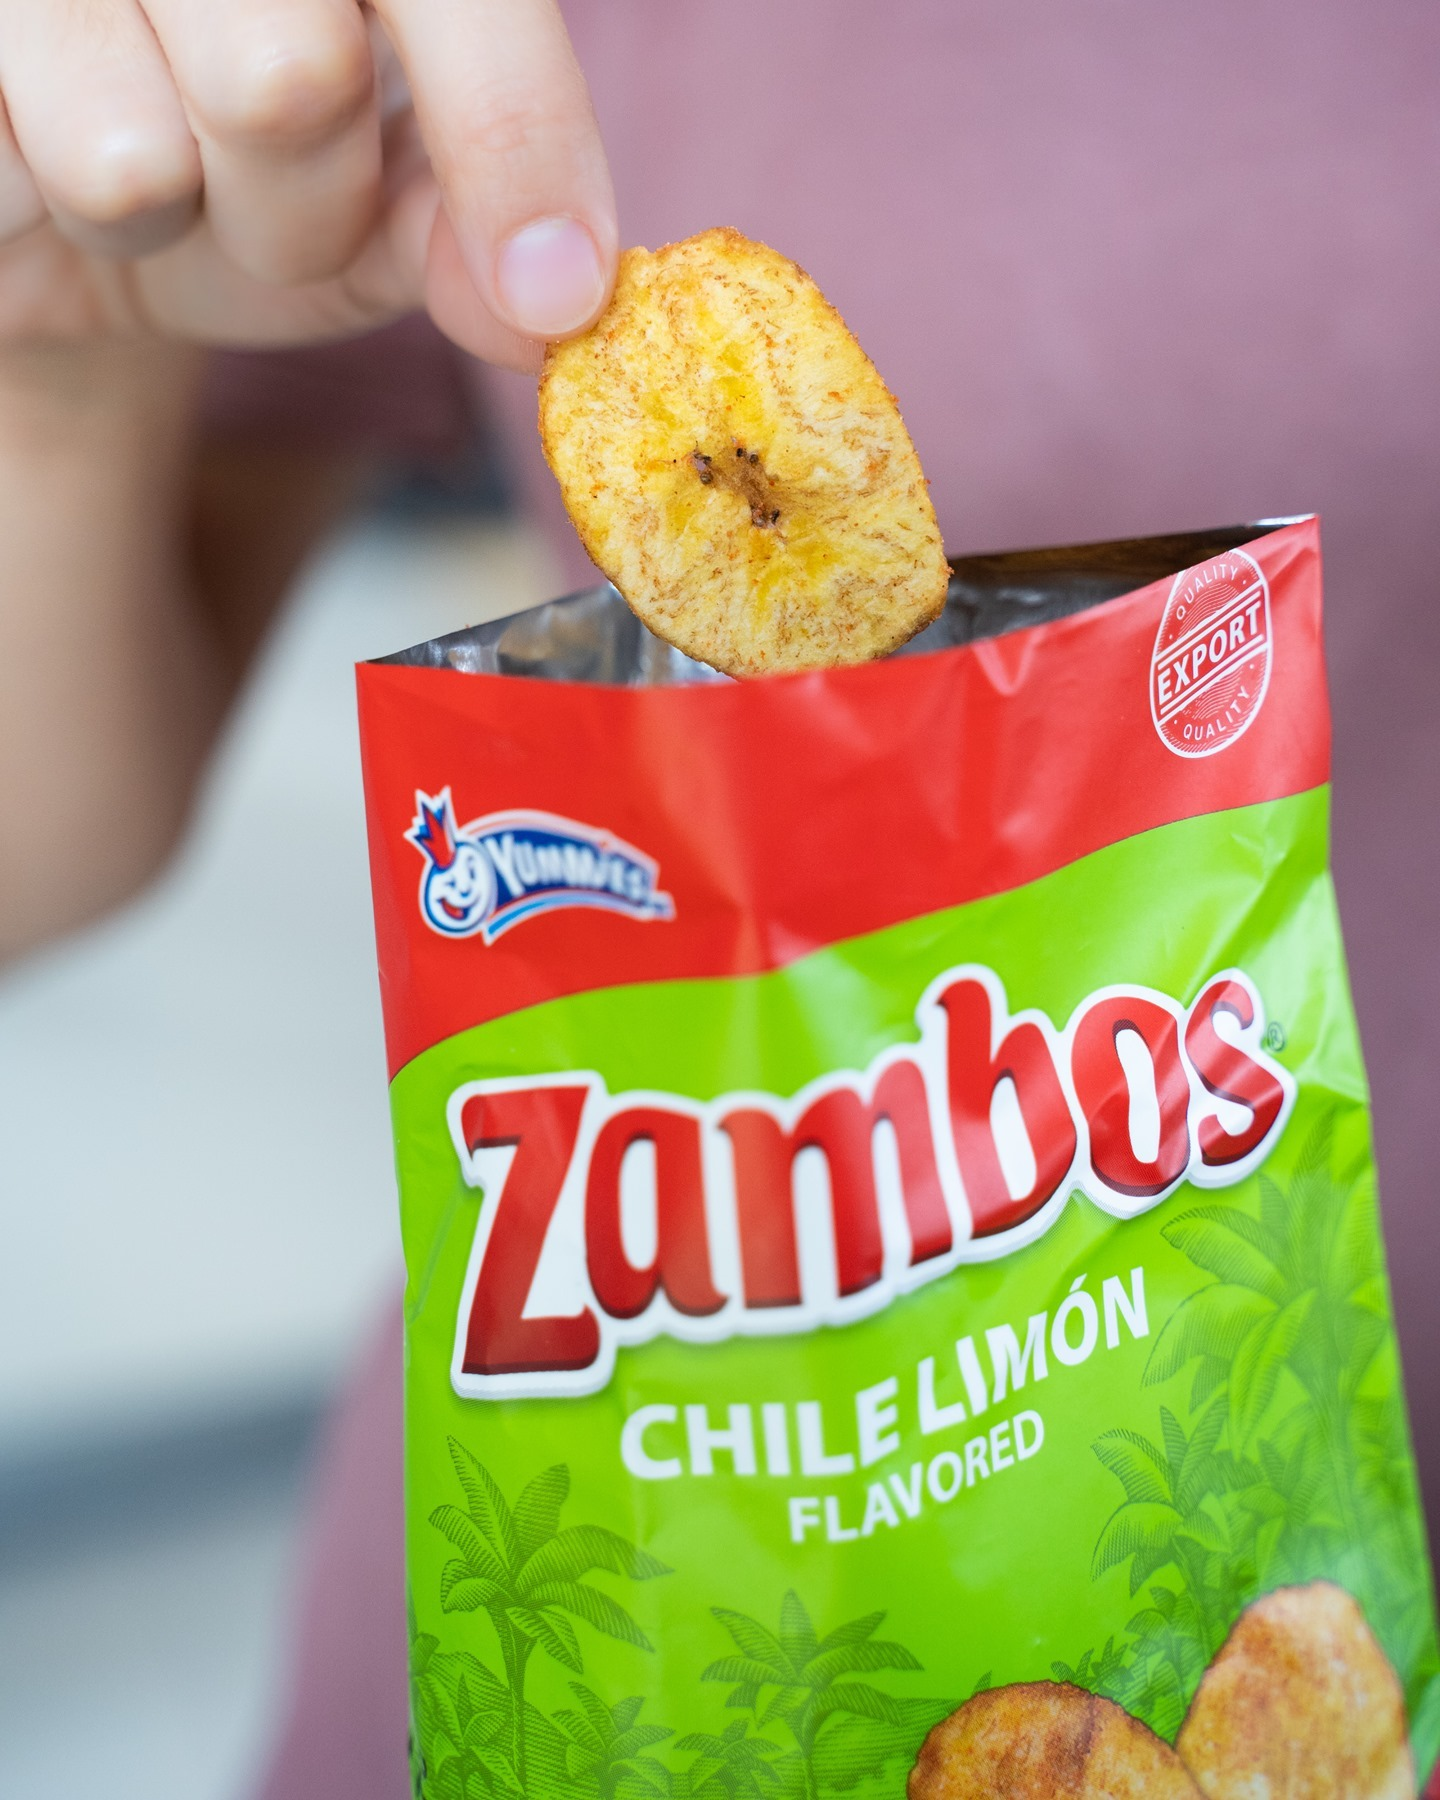 Did you know that the word Zambo dates back to colonial Spanish America?